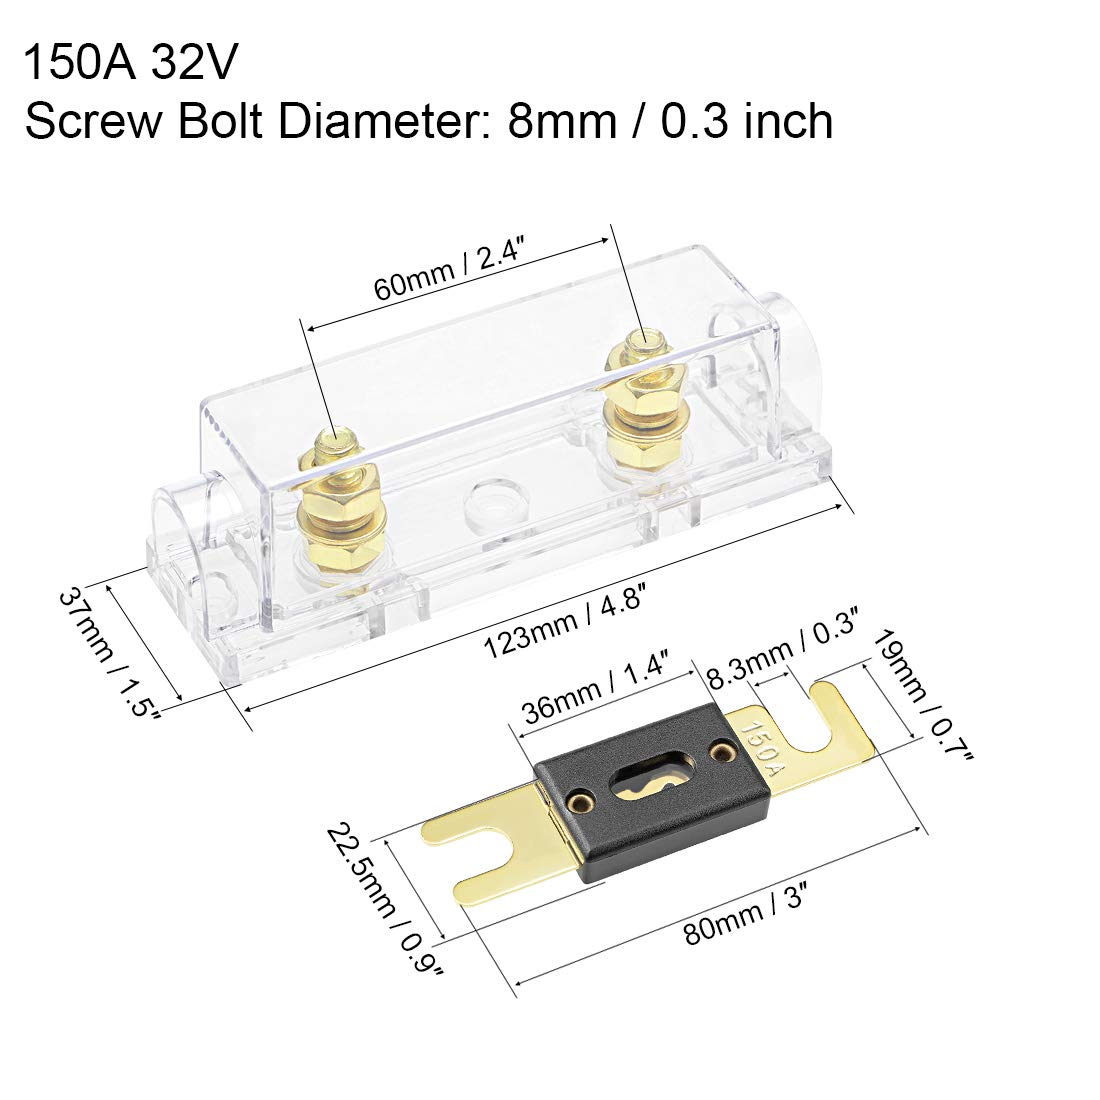 uxcell ANL Fuse Holder with 150 Amp Fuse DC 32 Volt for Automotive Car Vehicle Audio Amplifier Inverter Replacement with Clear Insulated Cover